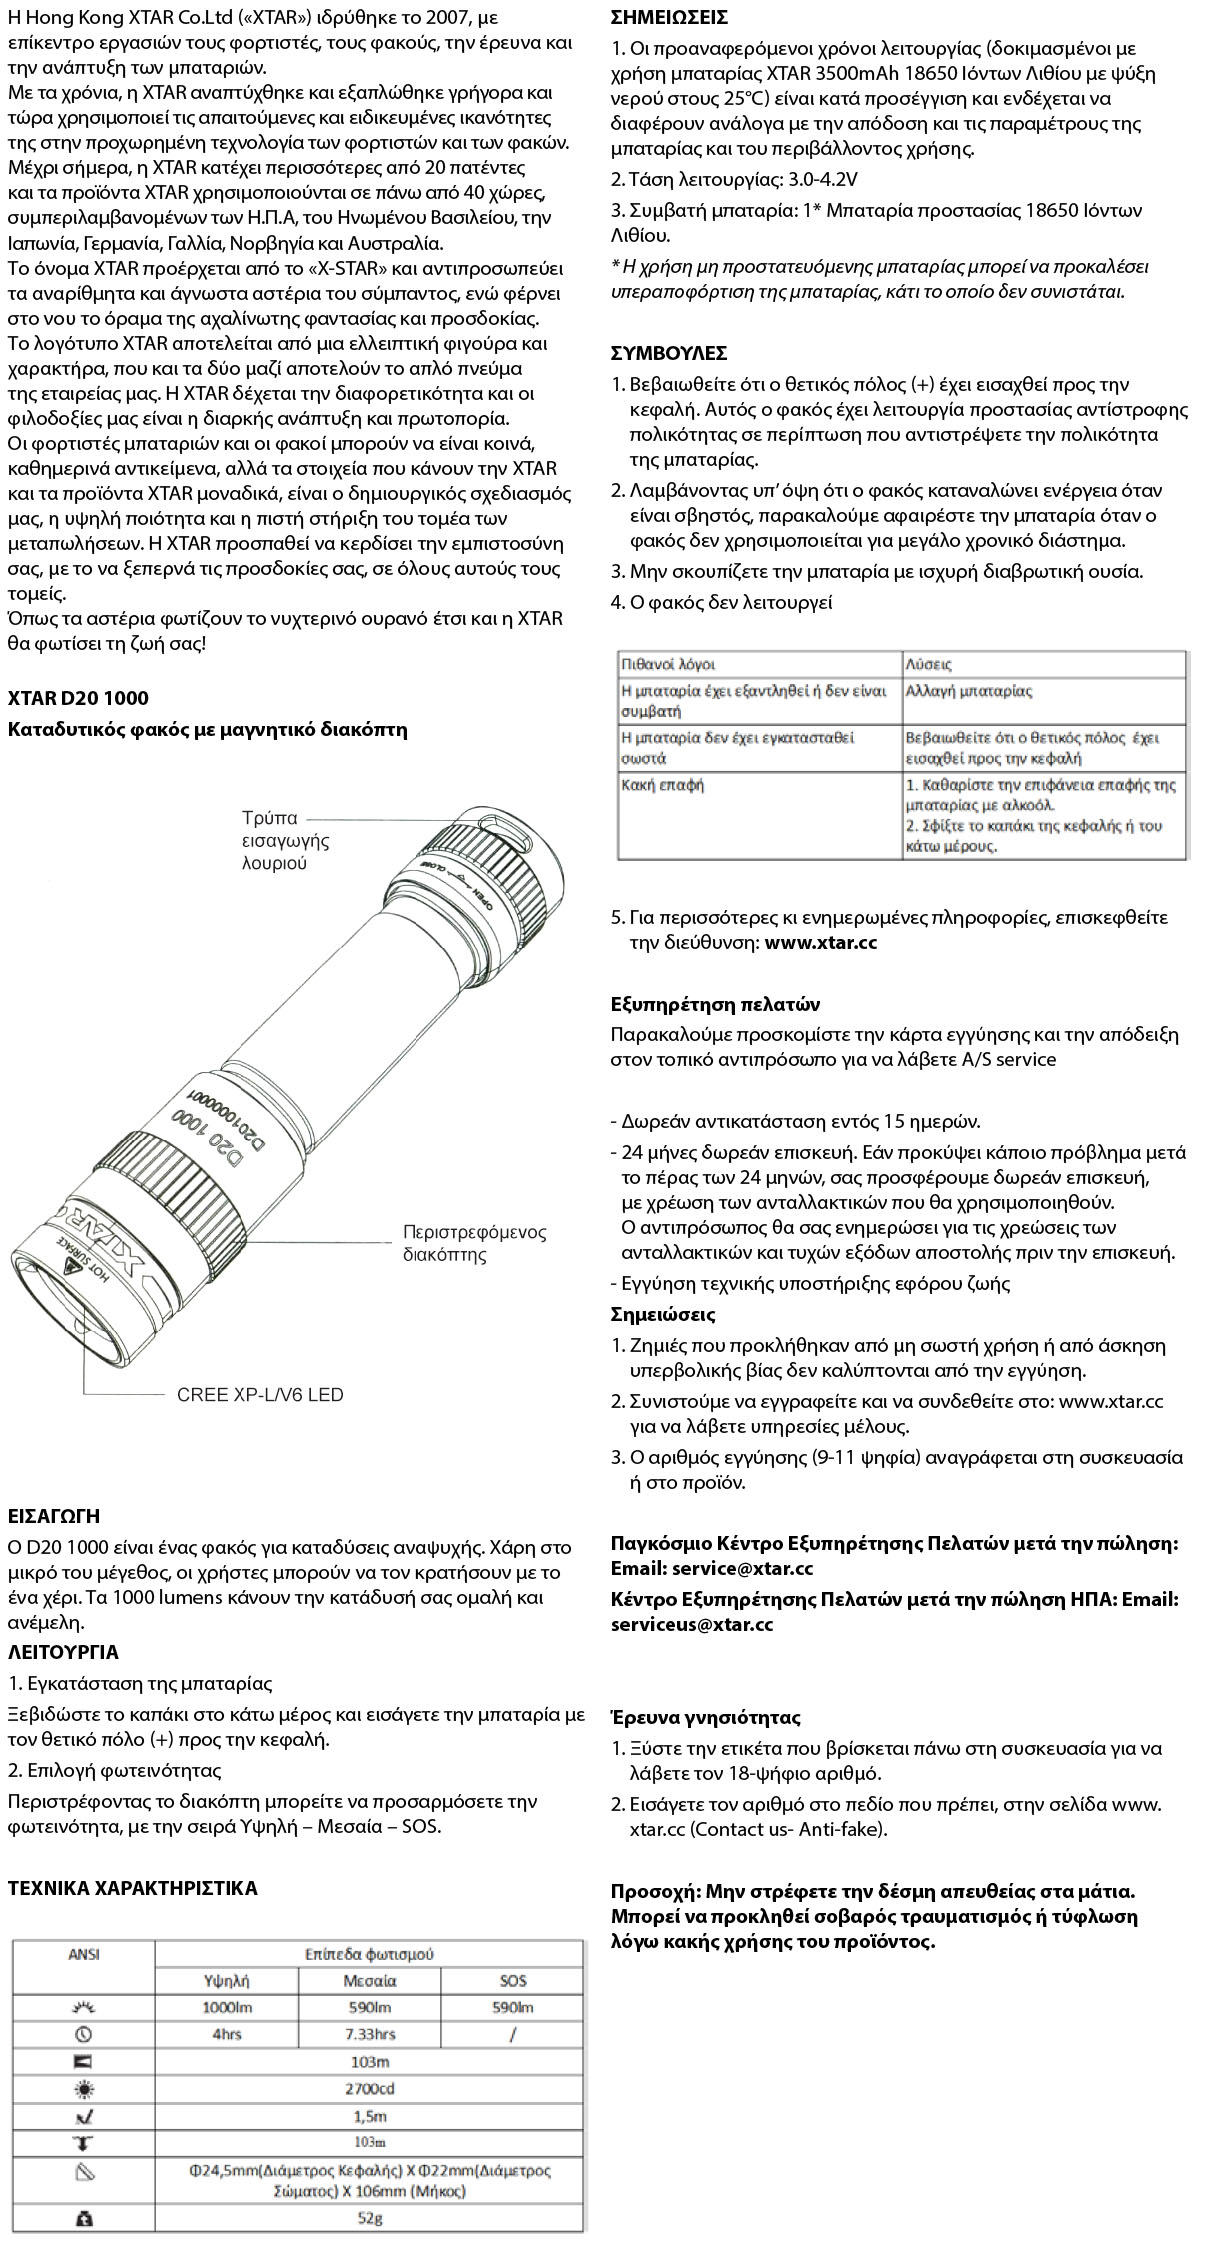 Xtar D20 1000lumens manual WEB XTAR